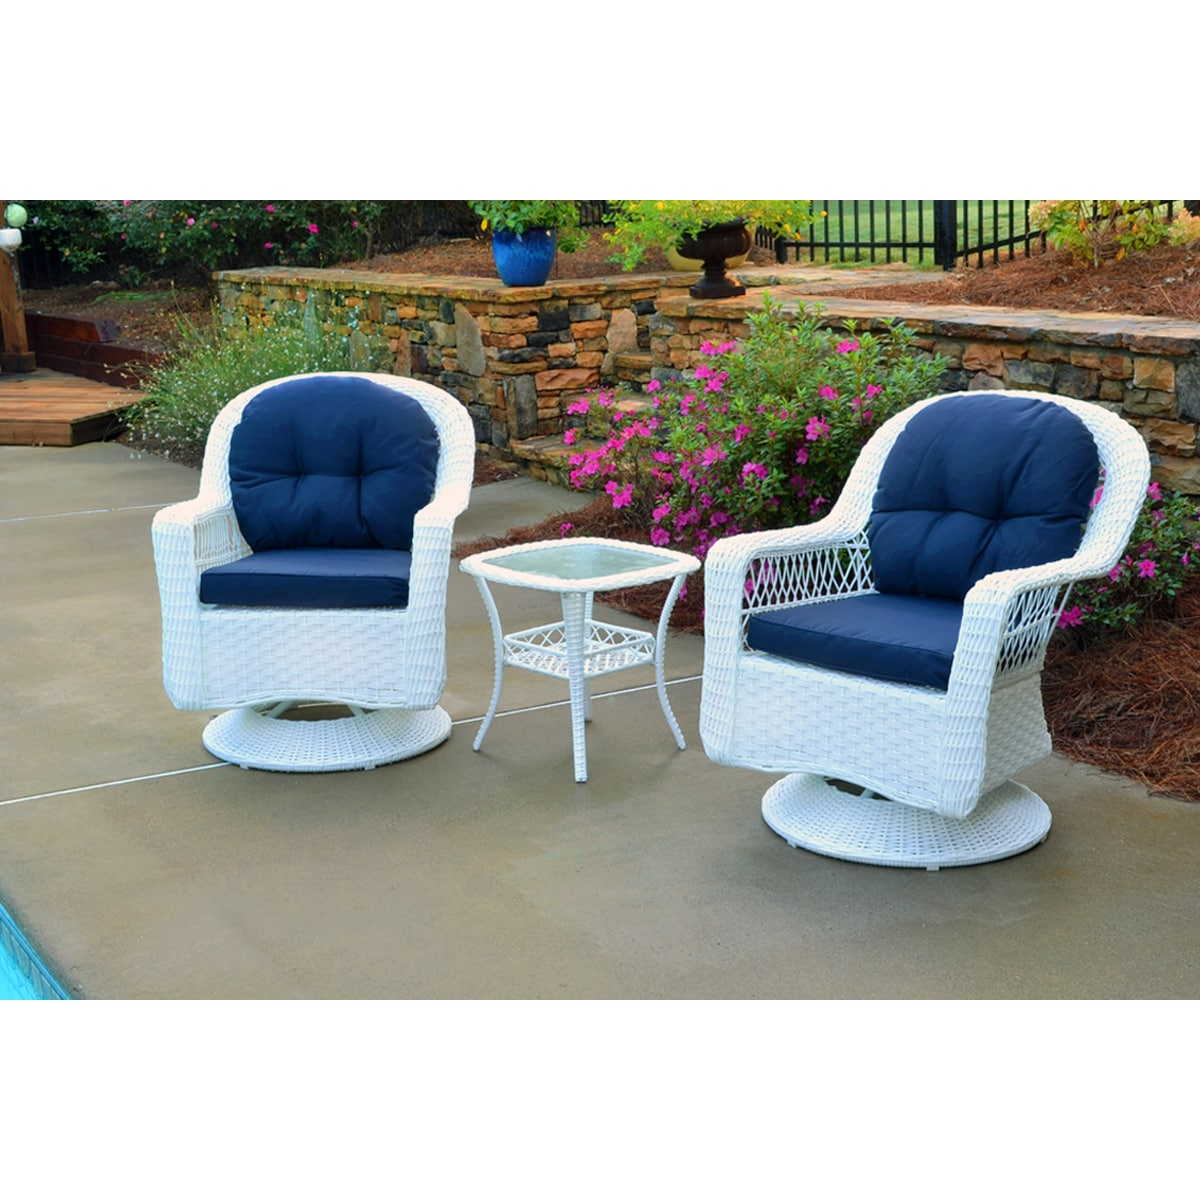 Shop biloxi outdoor white resin wicker 3 piece swivel glider set with blue cushions on sale free shipping today overstock 10634495